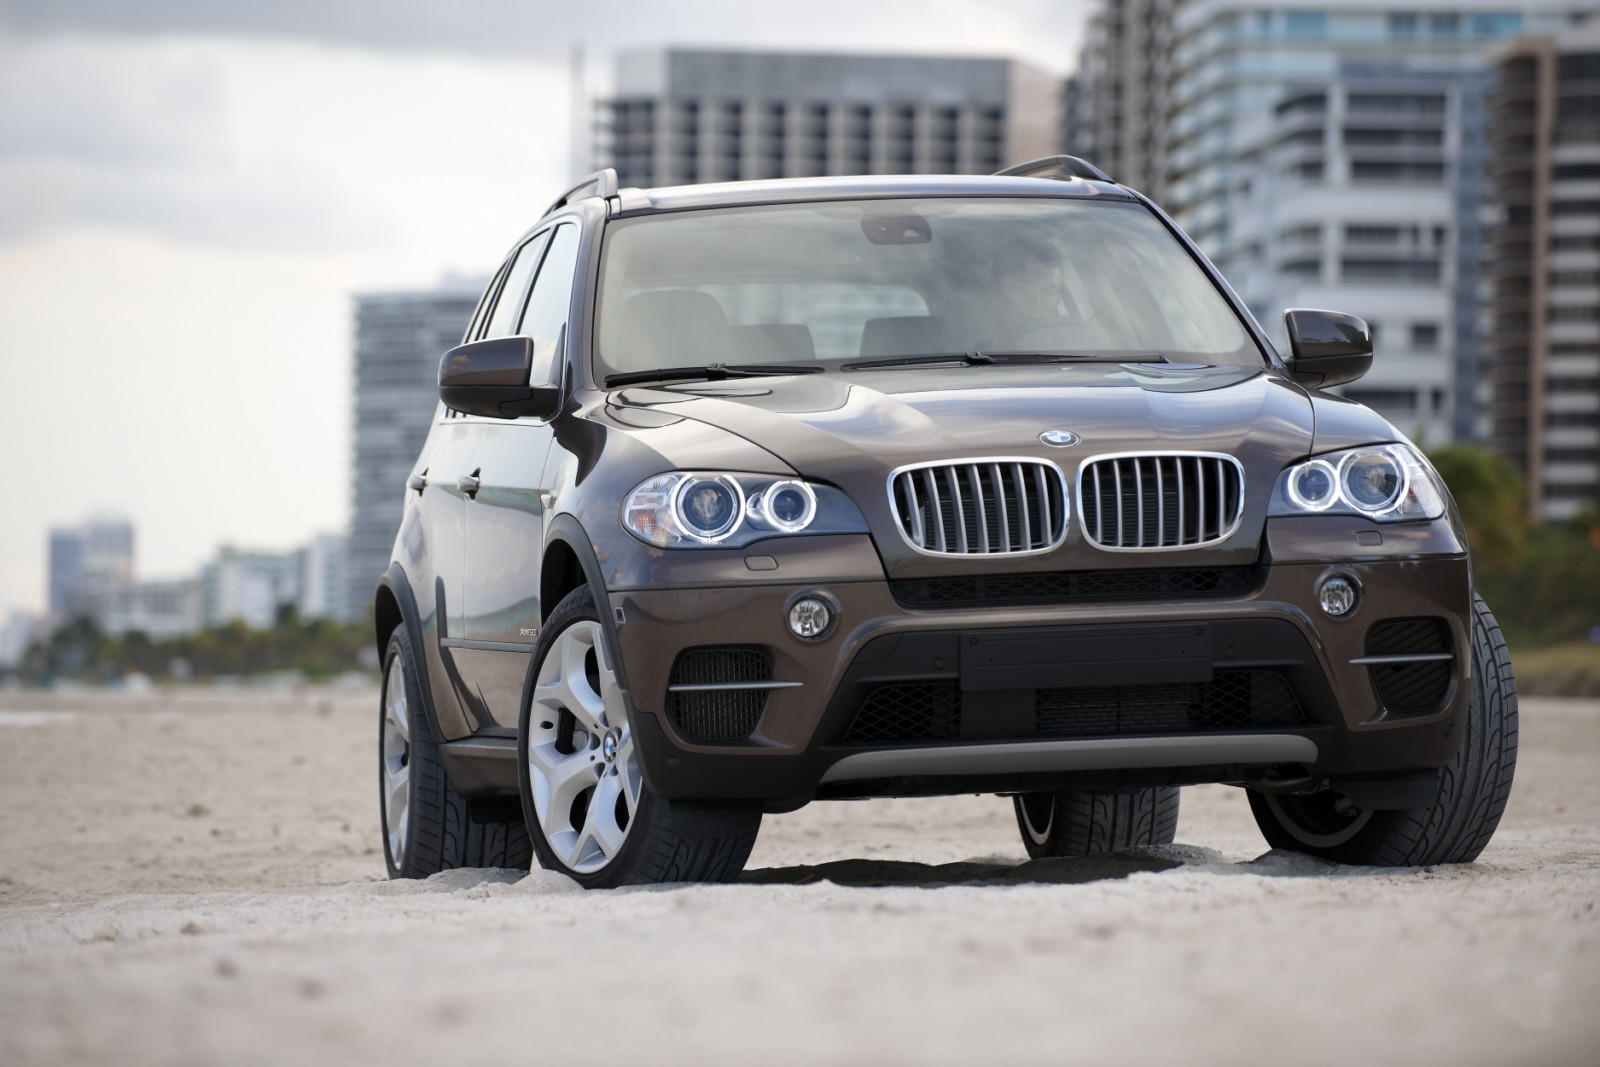 2010 Bmw X5 m (e70) – pictures, information and specs - Auto ...